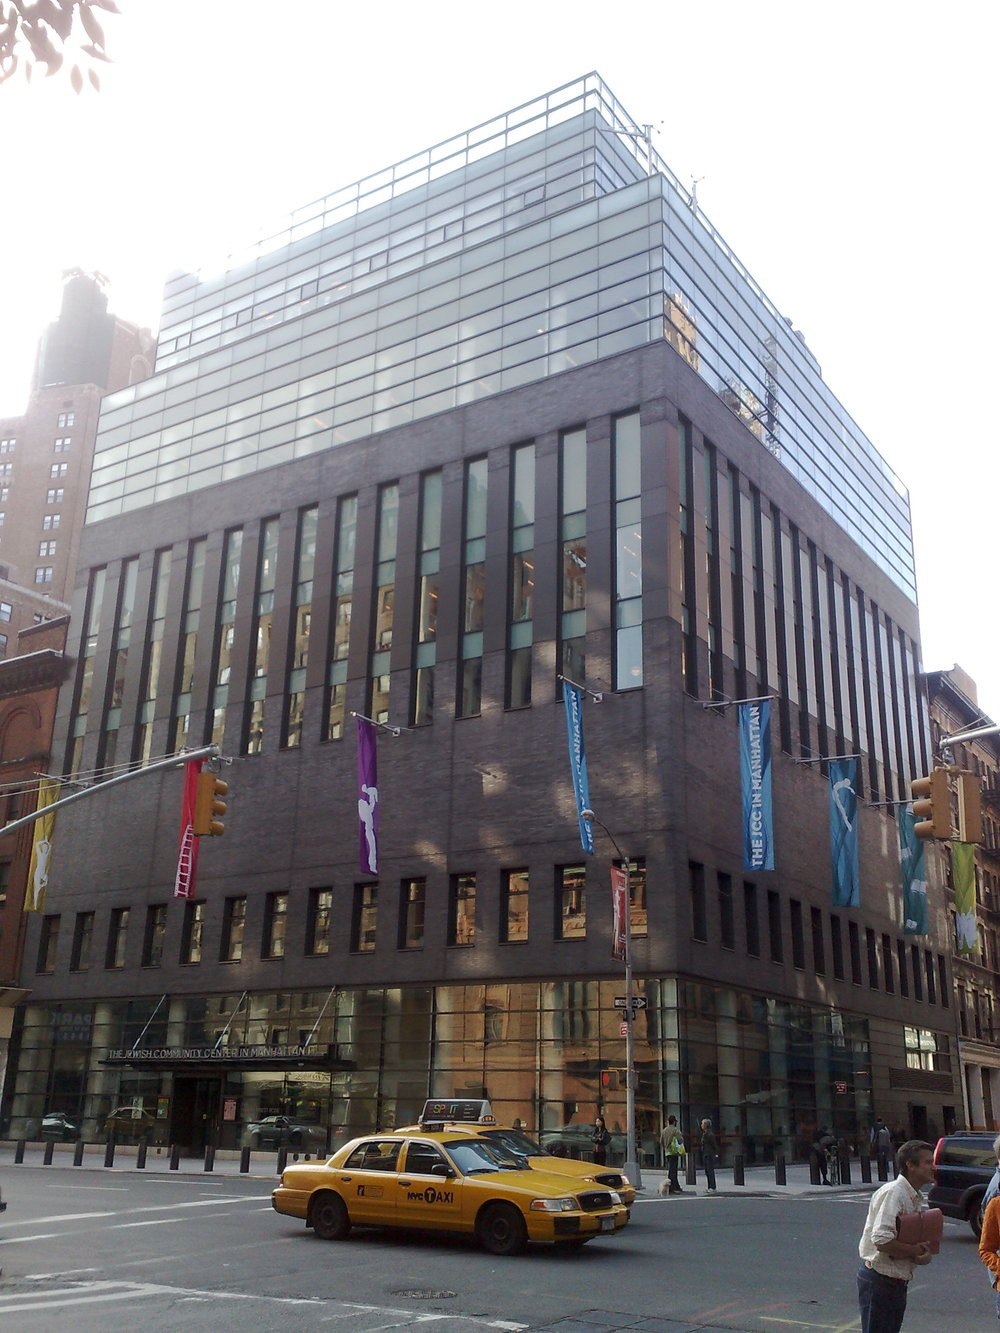 The JCC in Manhattan, whose director of film programs expressed support for boycotts of Israel in a Huffington Post op-ed, but then removed that language for the article. Credit: Team Boerum via Wikimedia Commons.